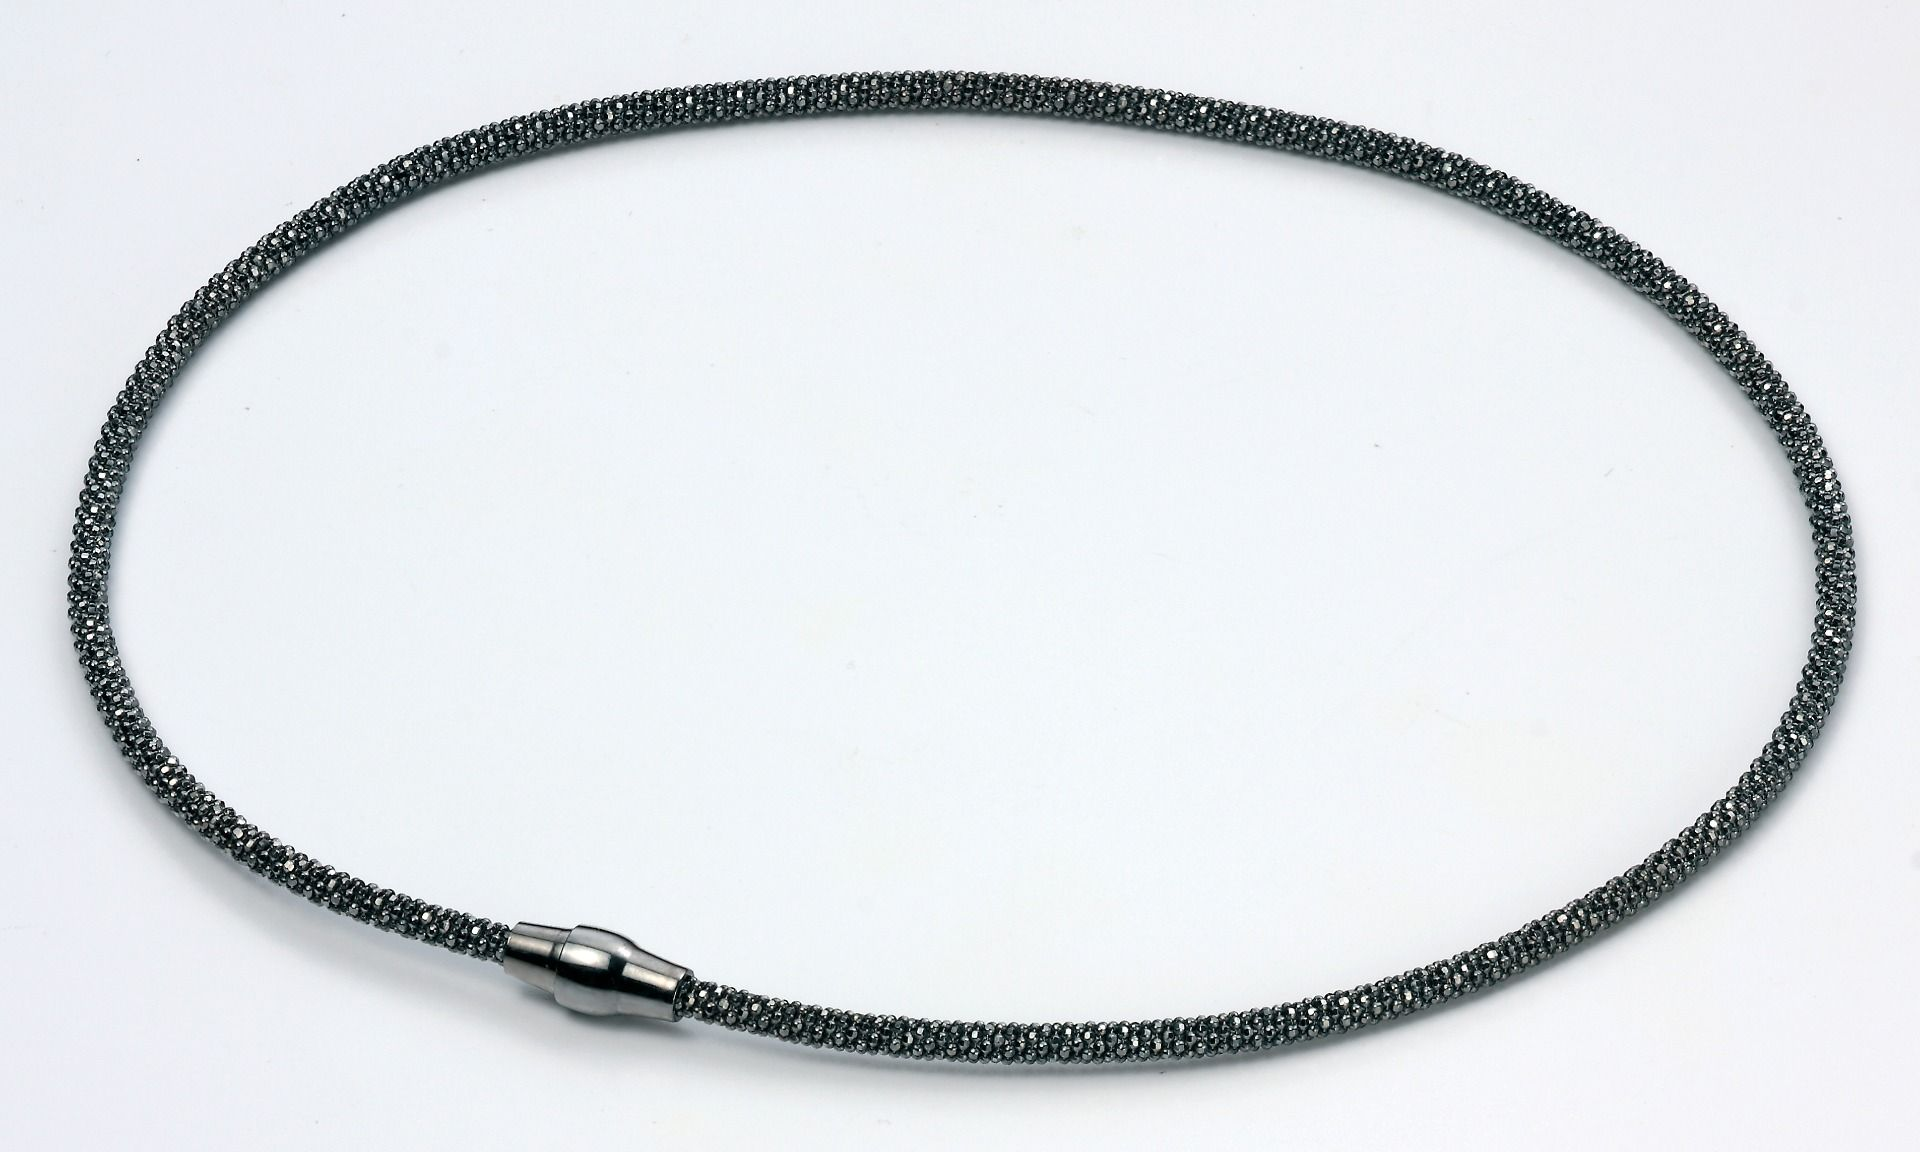 Elements Sterling Silver, Ladies, N3457, Ruthenium Diamond Bead Chain Necklace of Length 41cm